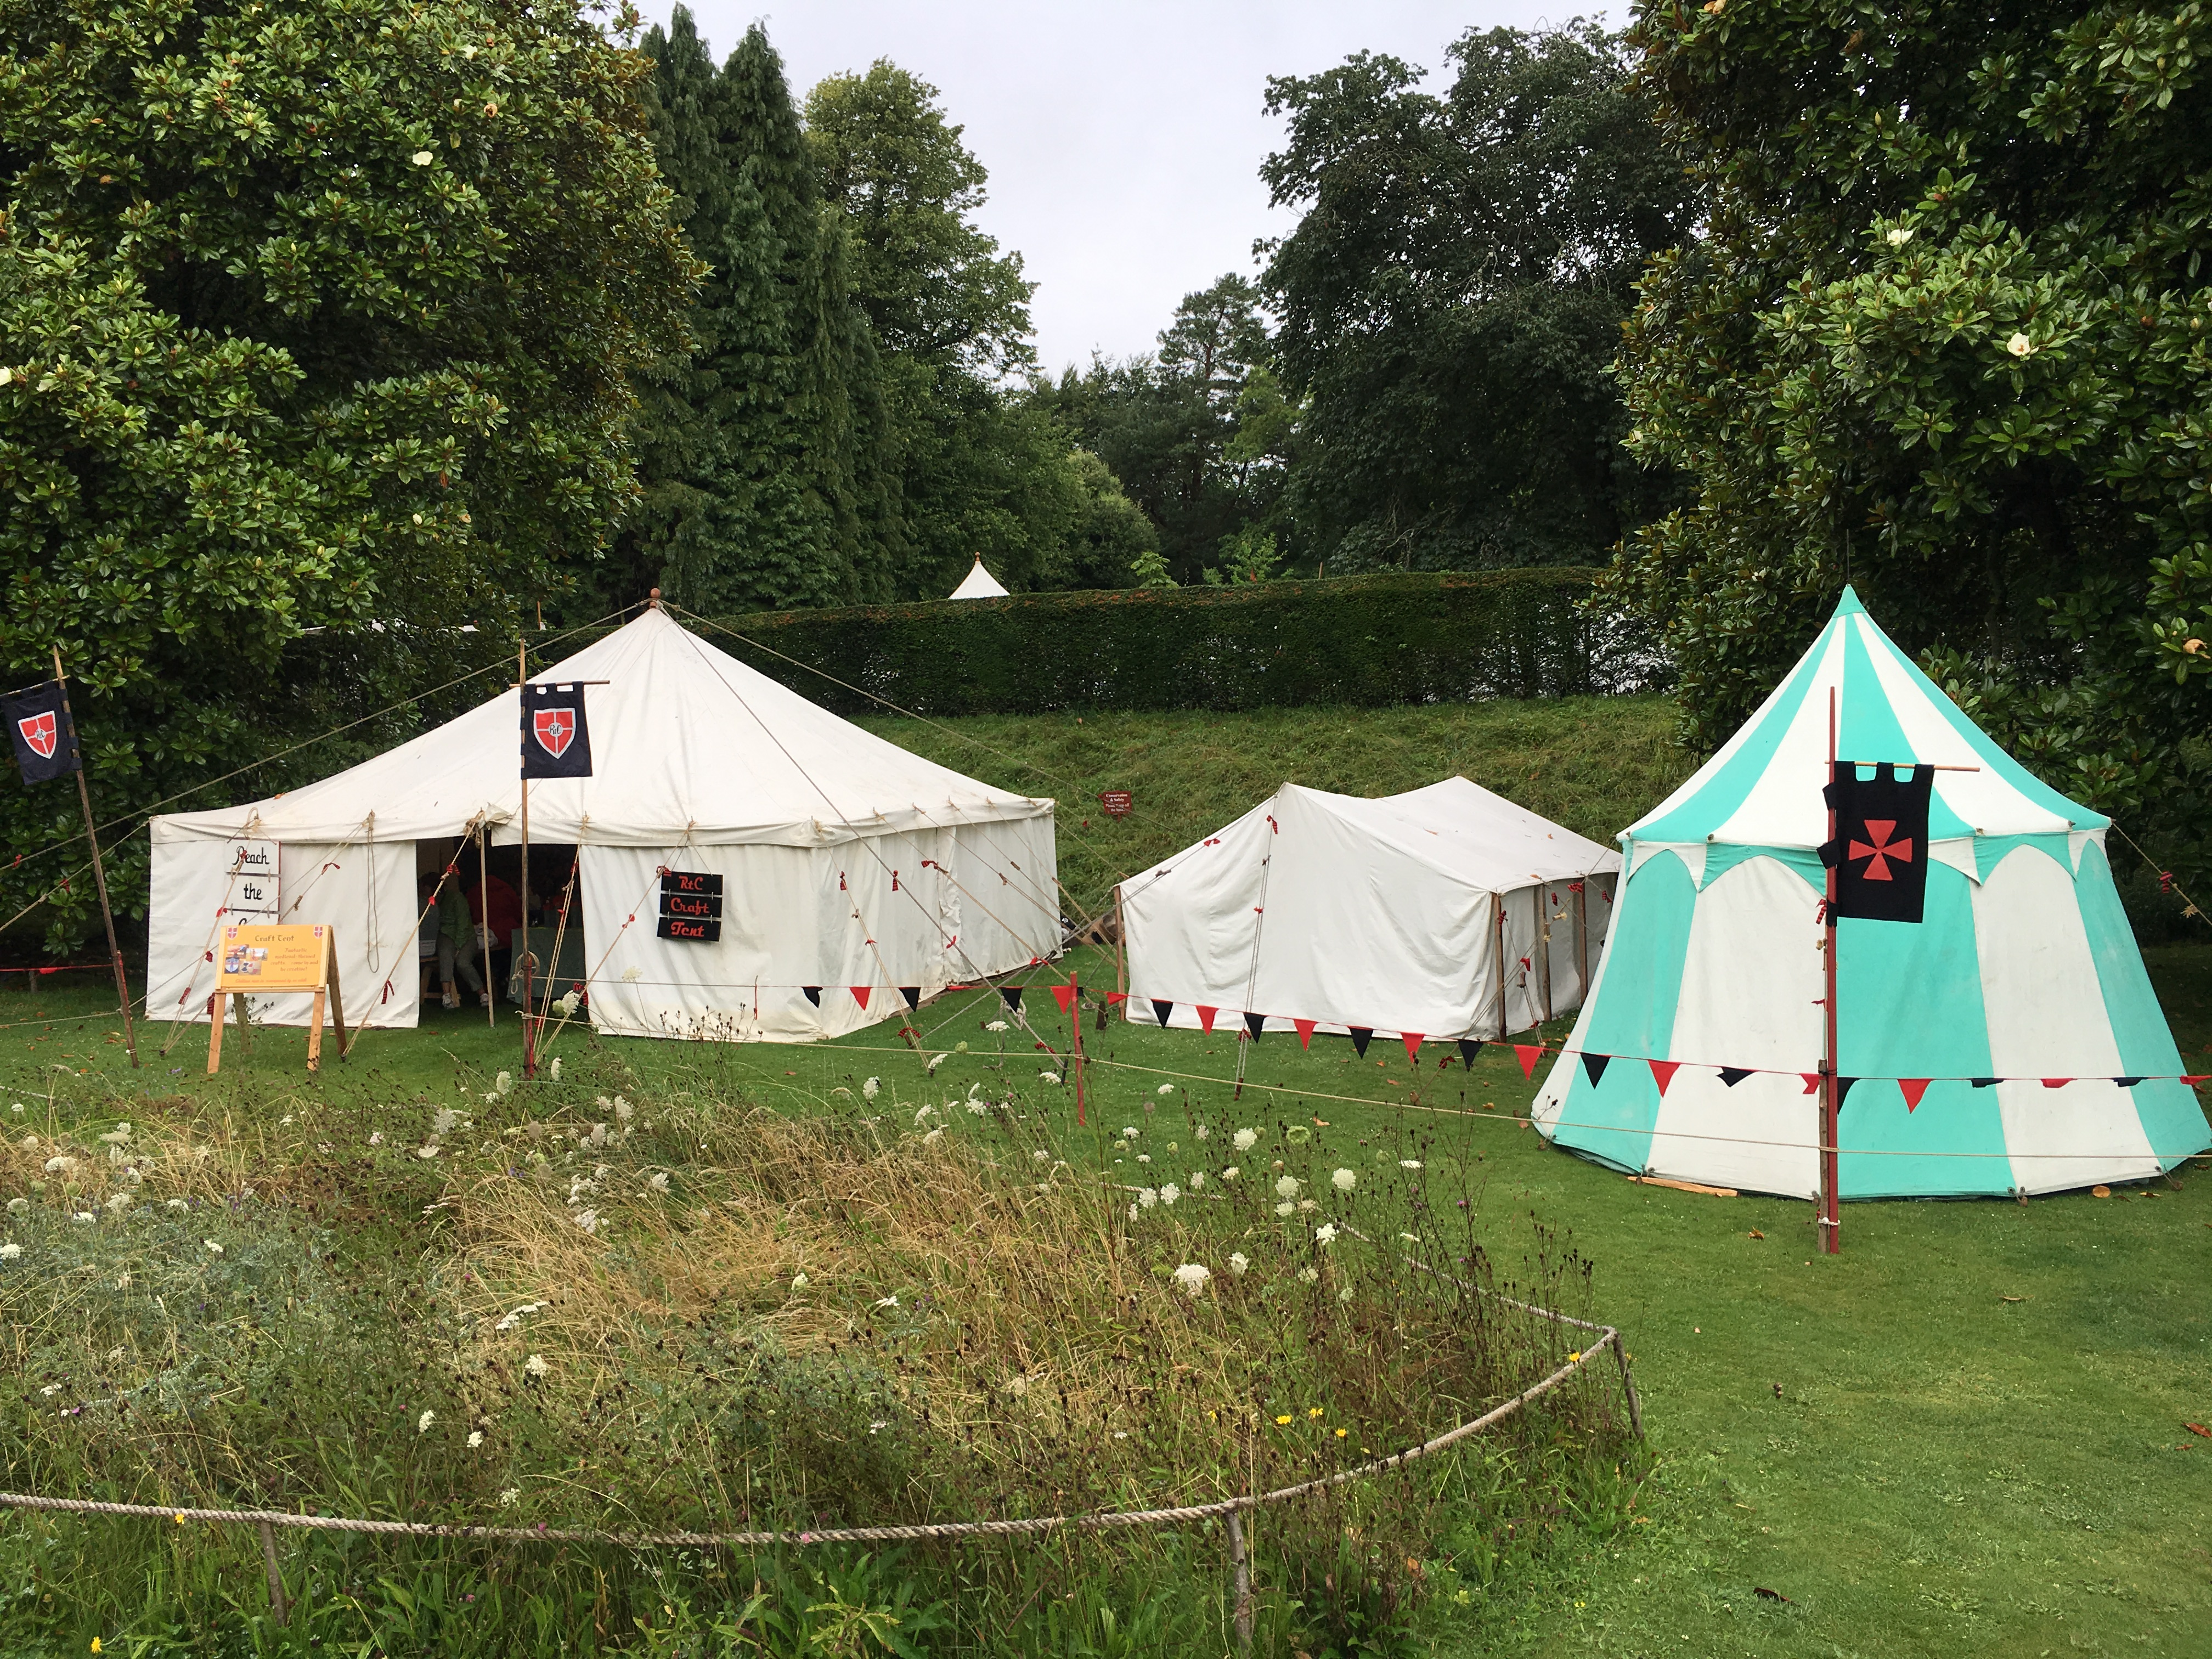 Period tents and stalls